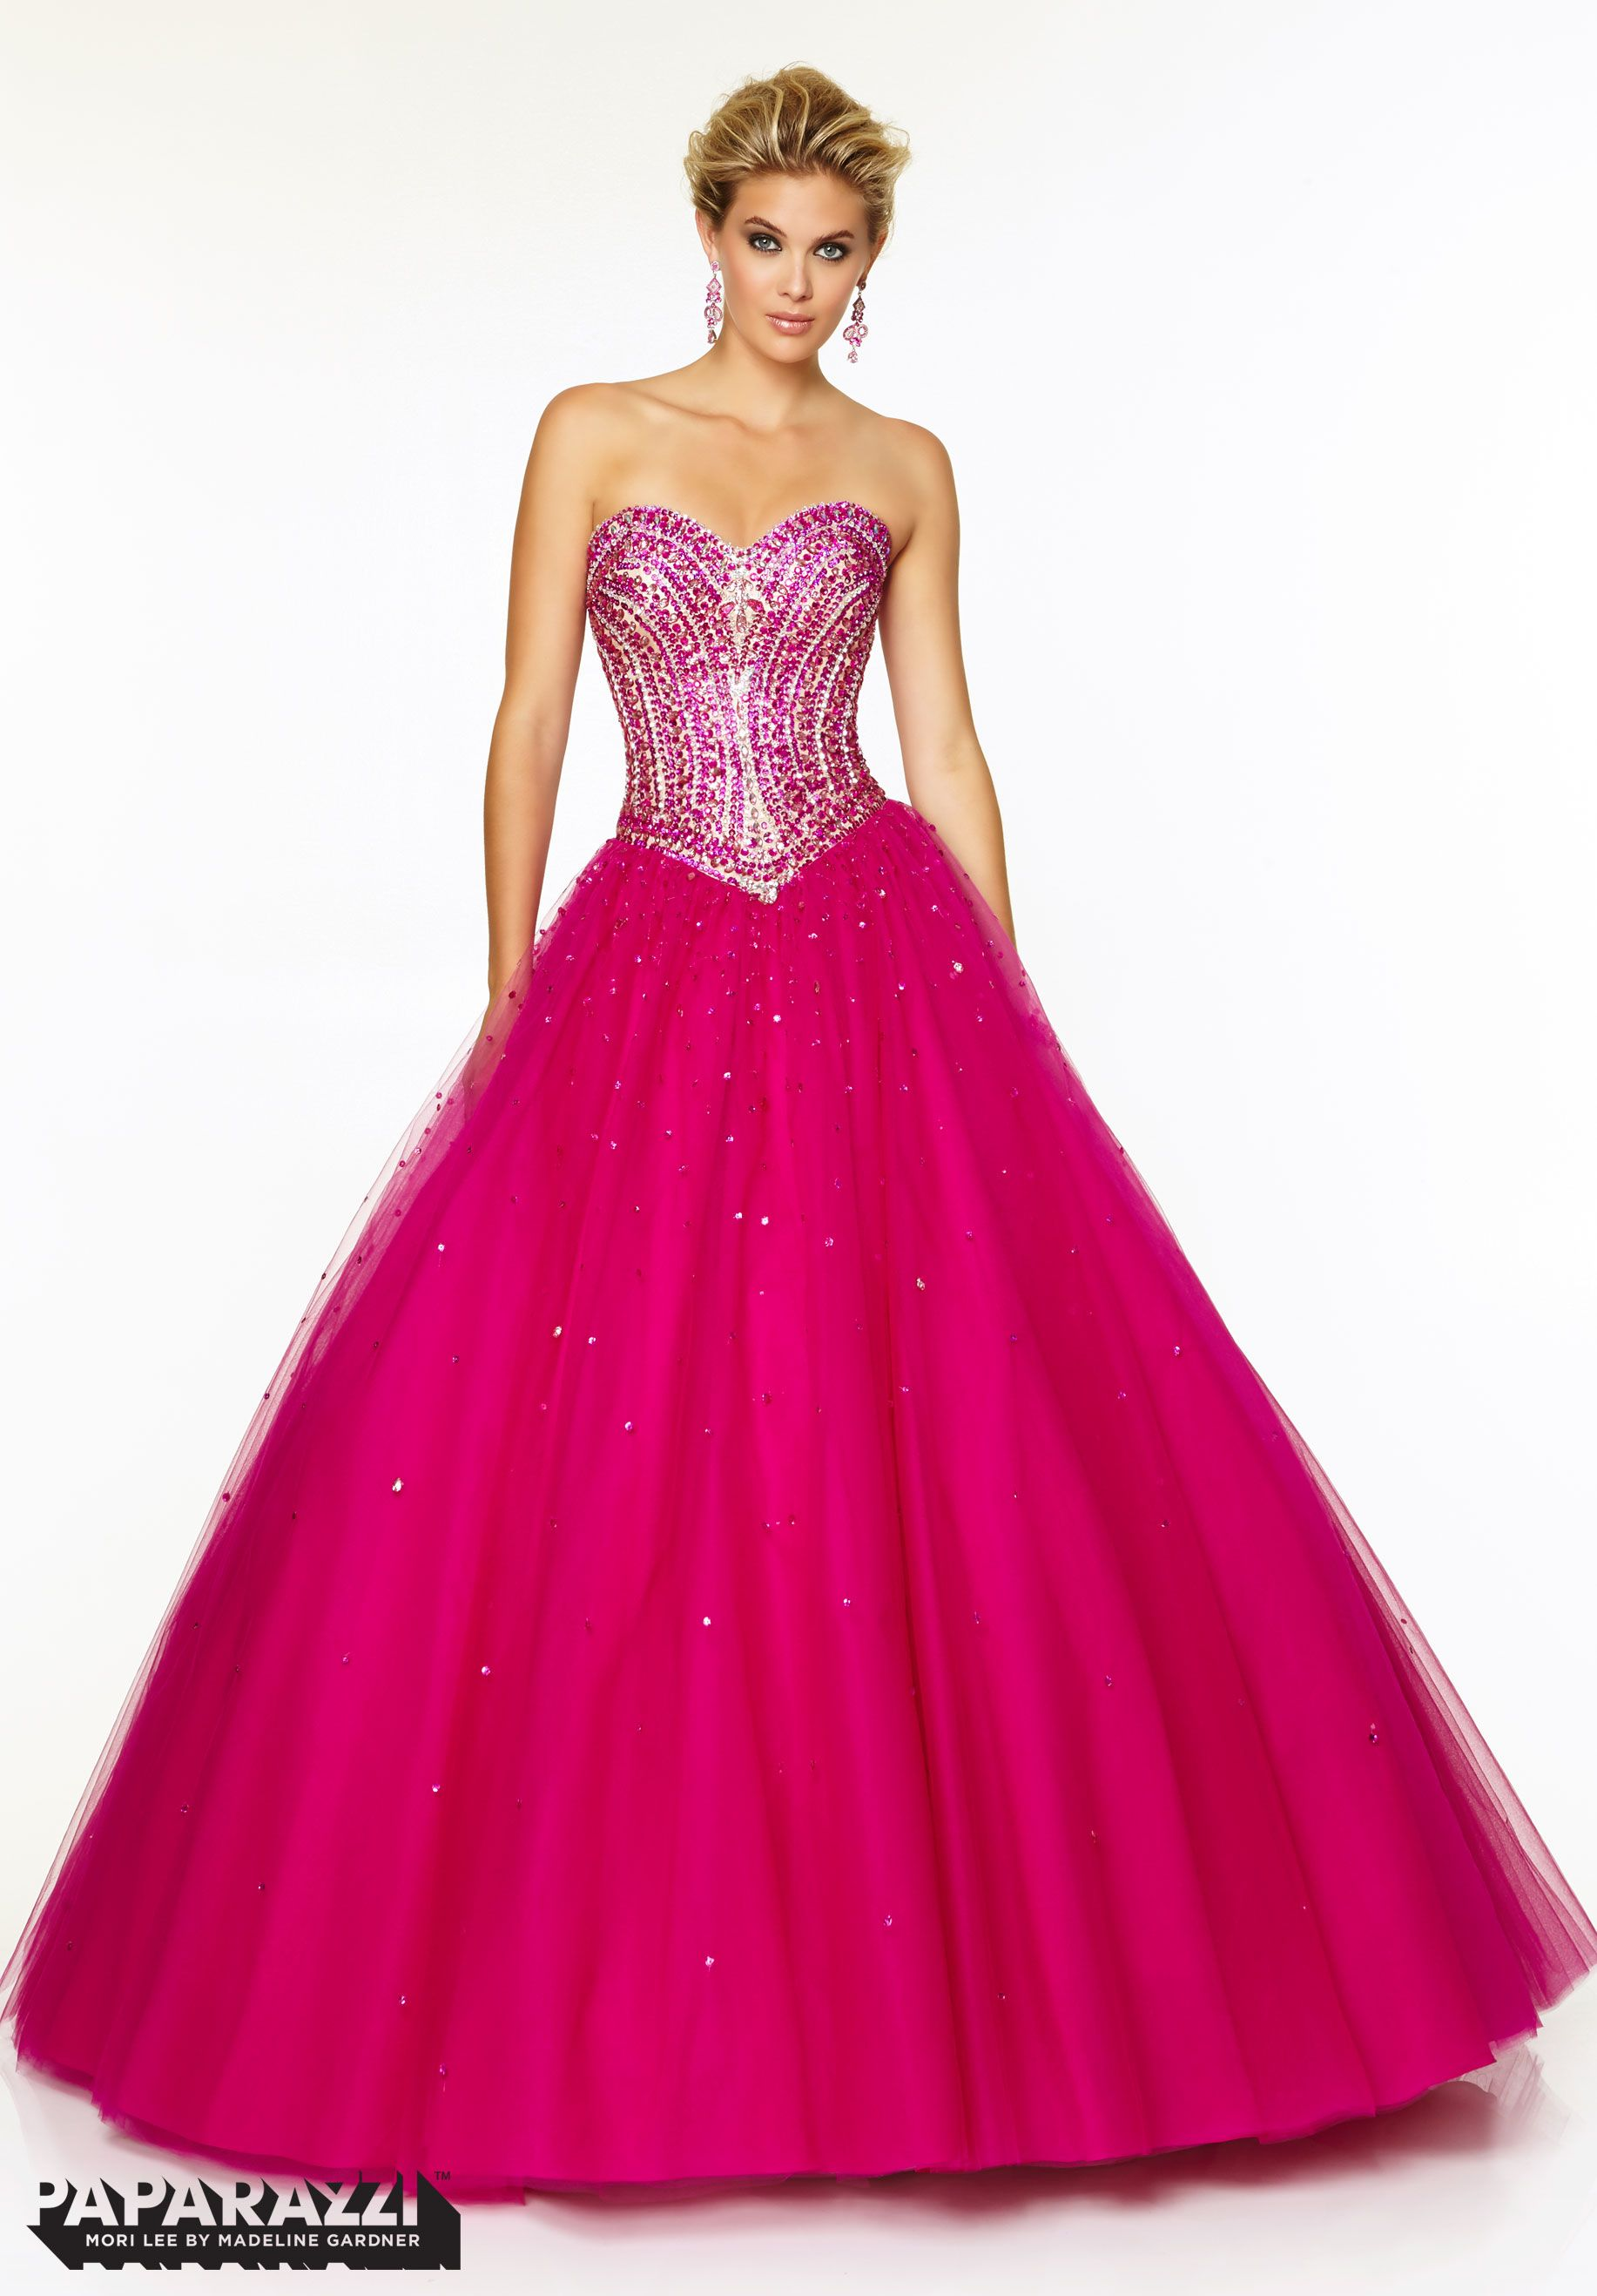 Prom Dresses / Gowns Style 97125: Tulle Ballgown with Jeweled ...